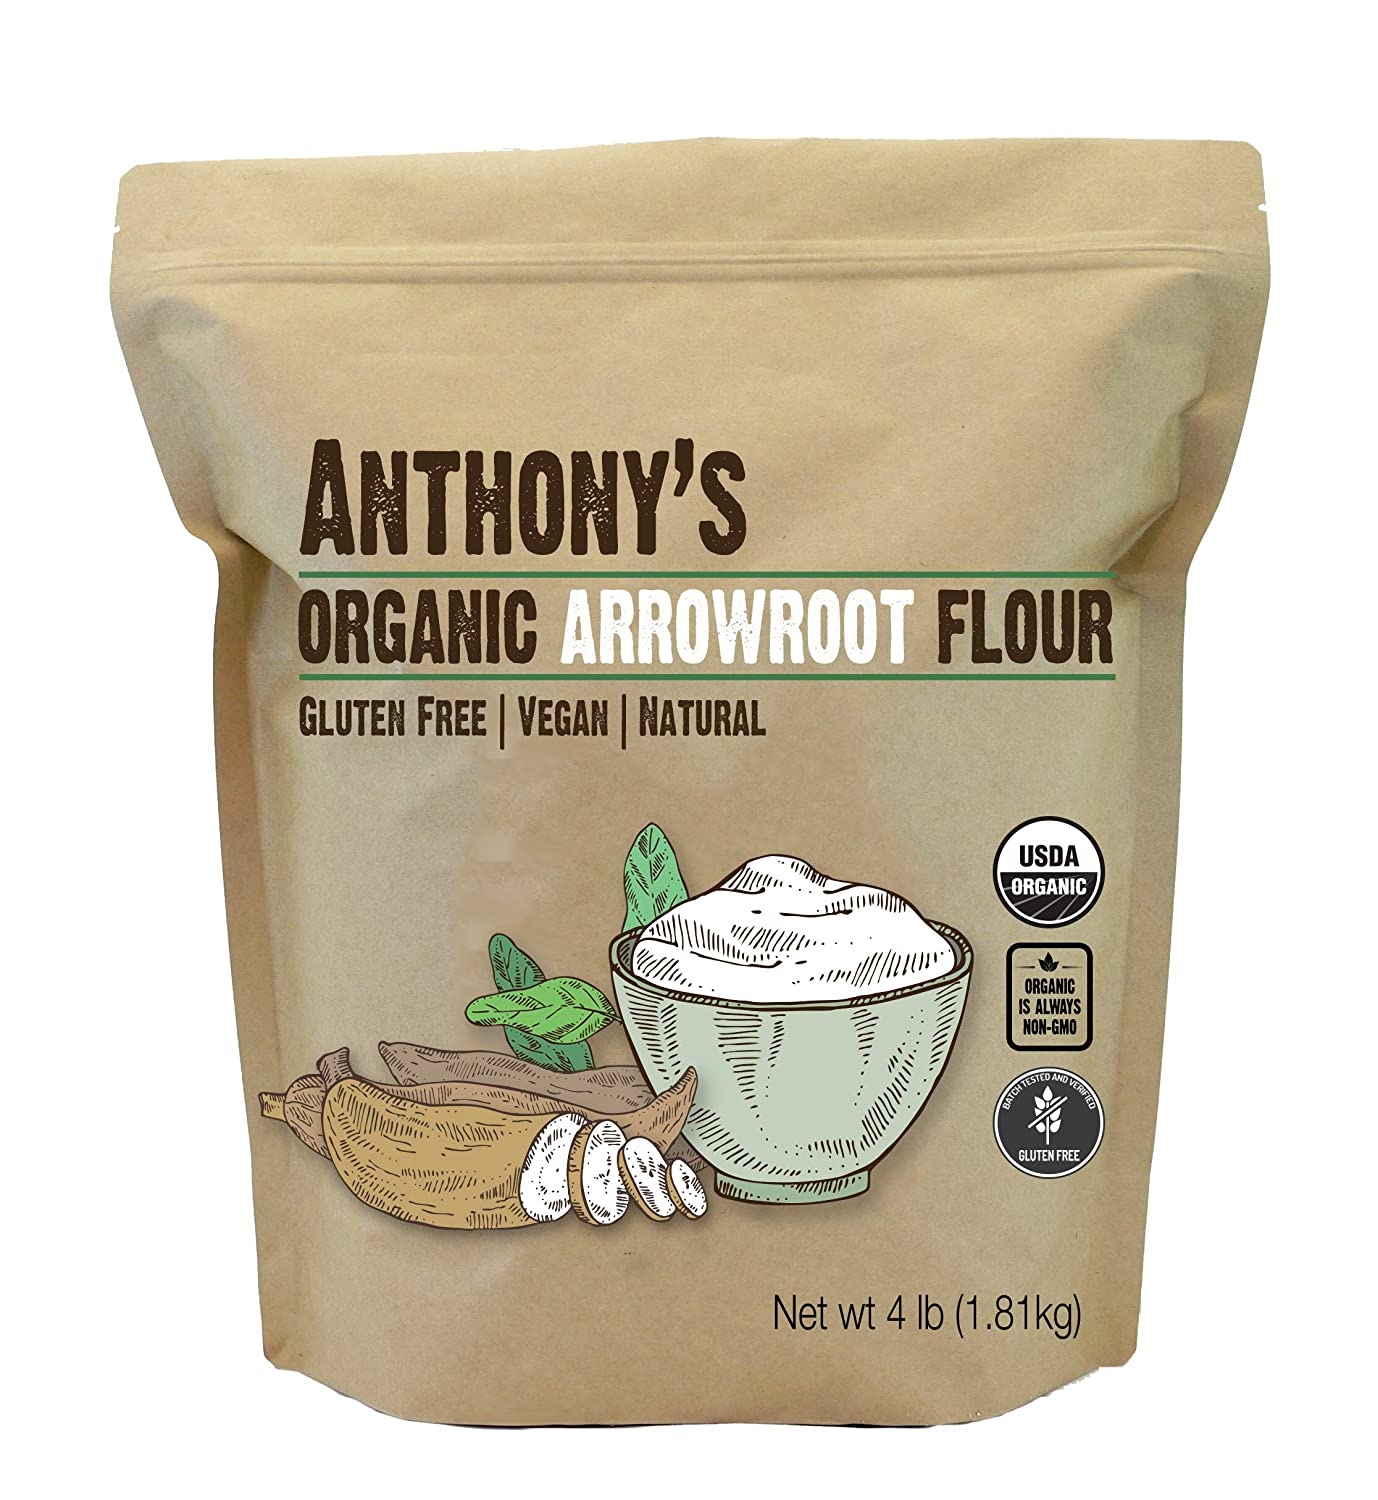 Anthony's Organic Arrowroot Flour, 4 lb, Batch Tested Gluten Free, Non GMO